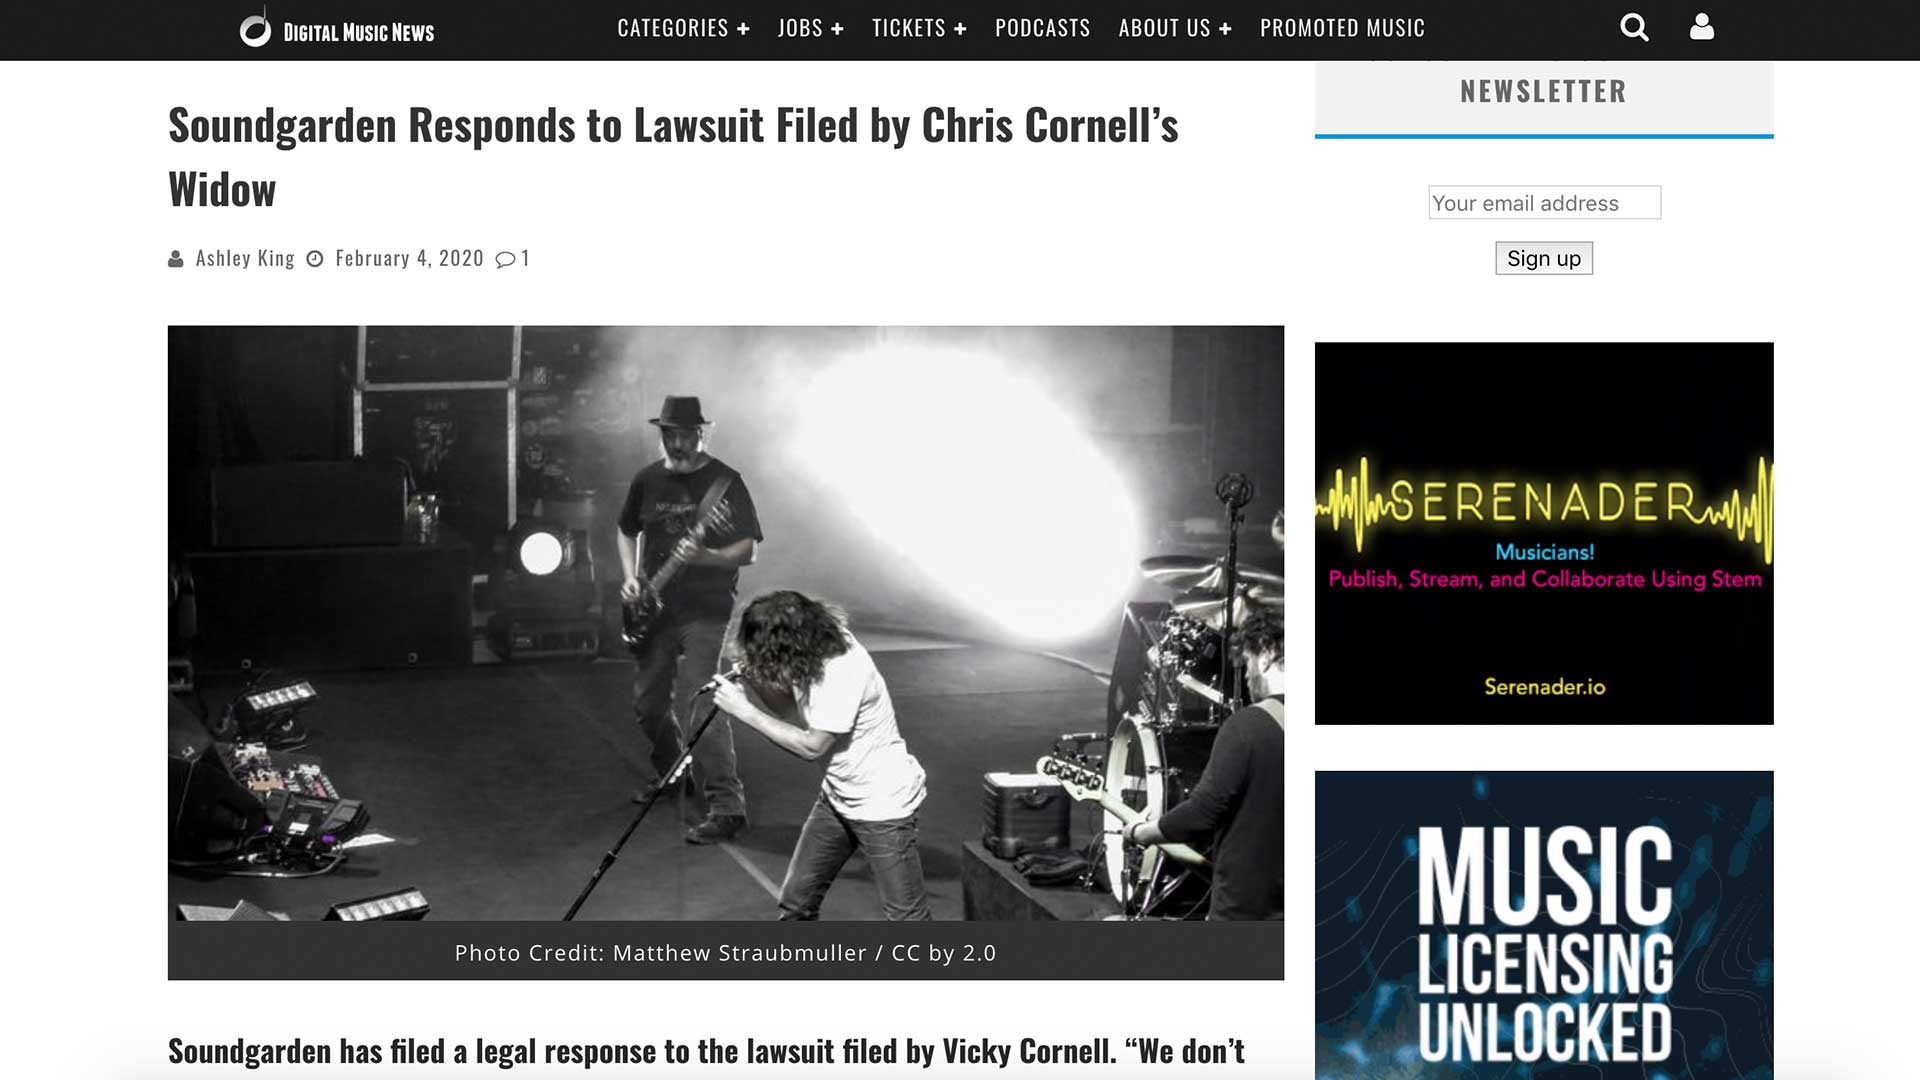 Fairness Rocks News Soundgarden Responds to Lawsuit Filed by Chris Cornell's Widow